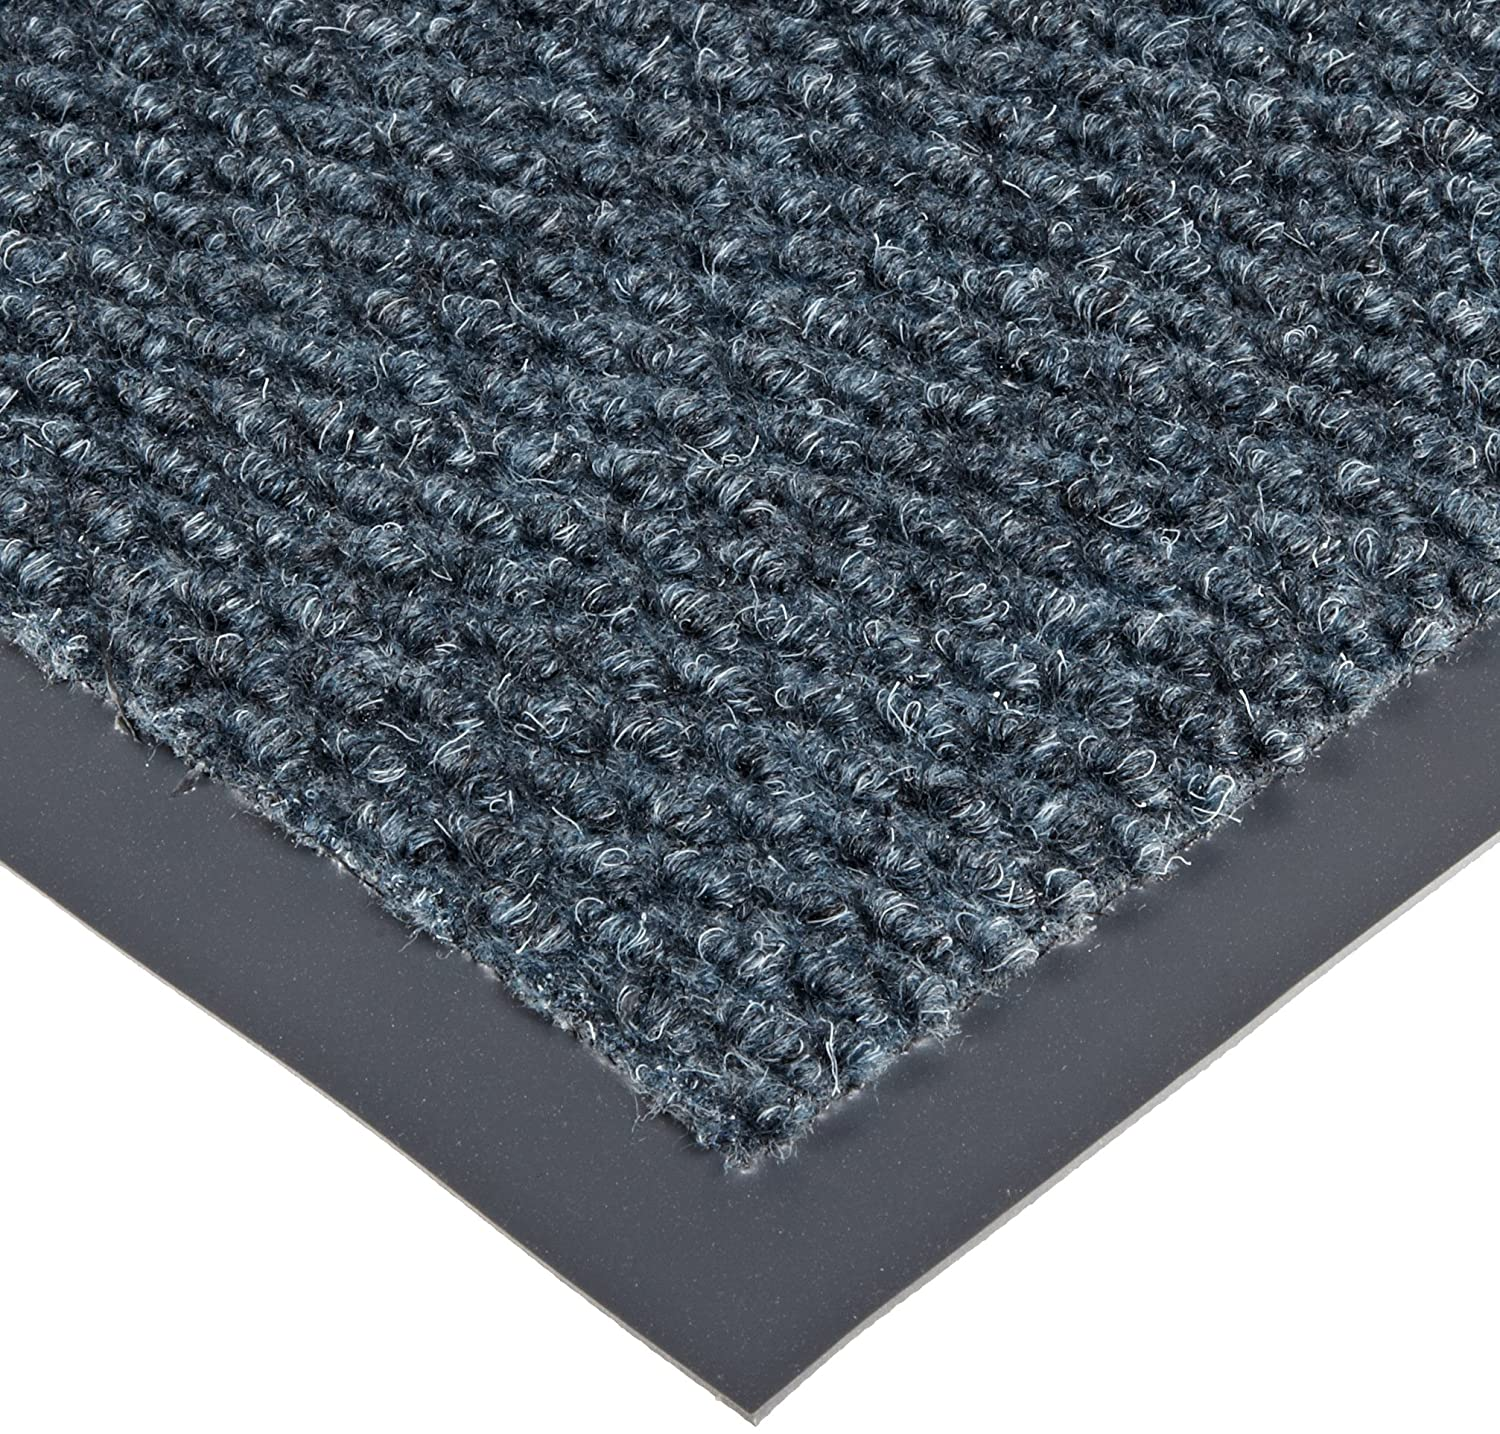 "NoTrax AX-AY-ABHI-19843Notrax 136 Polynib Entrance Mat, for Lobbies and Indoor Entranceways, 2' Width x 3' Length x 1/4"" Thickness, Brown Superior Manufacturing"